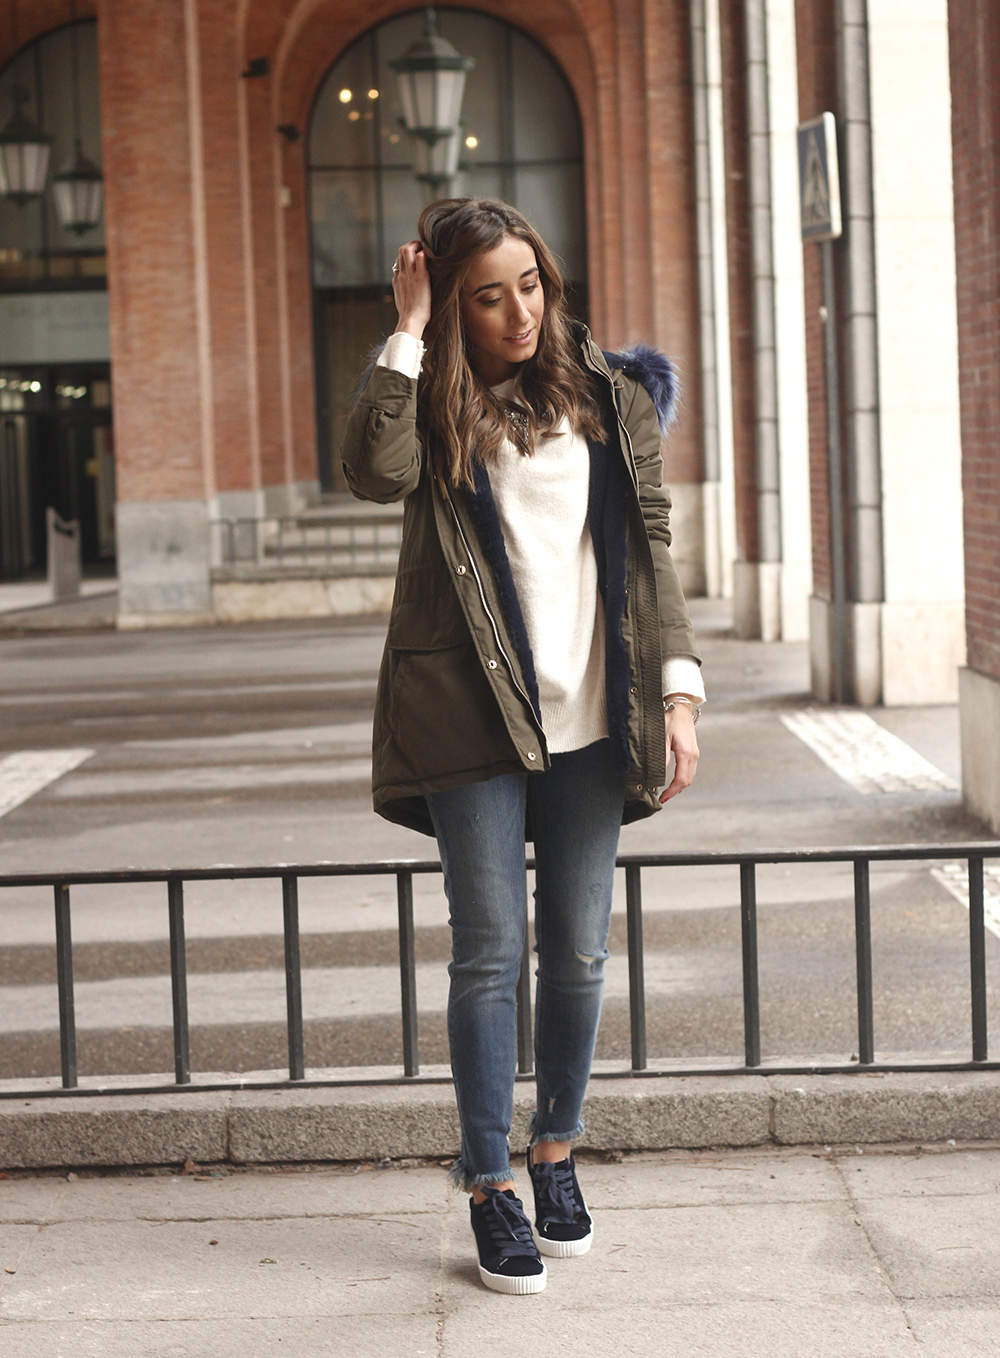 Green Parka Velvet sneakers uterqüe jeans fall rainy day outfit style fashion06